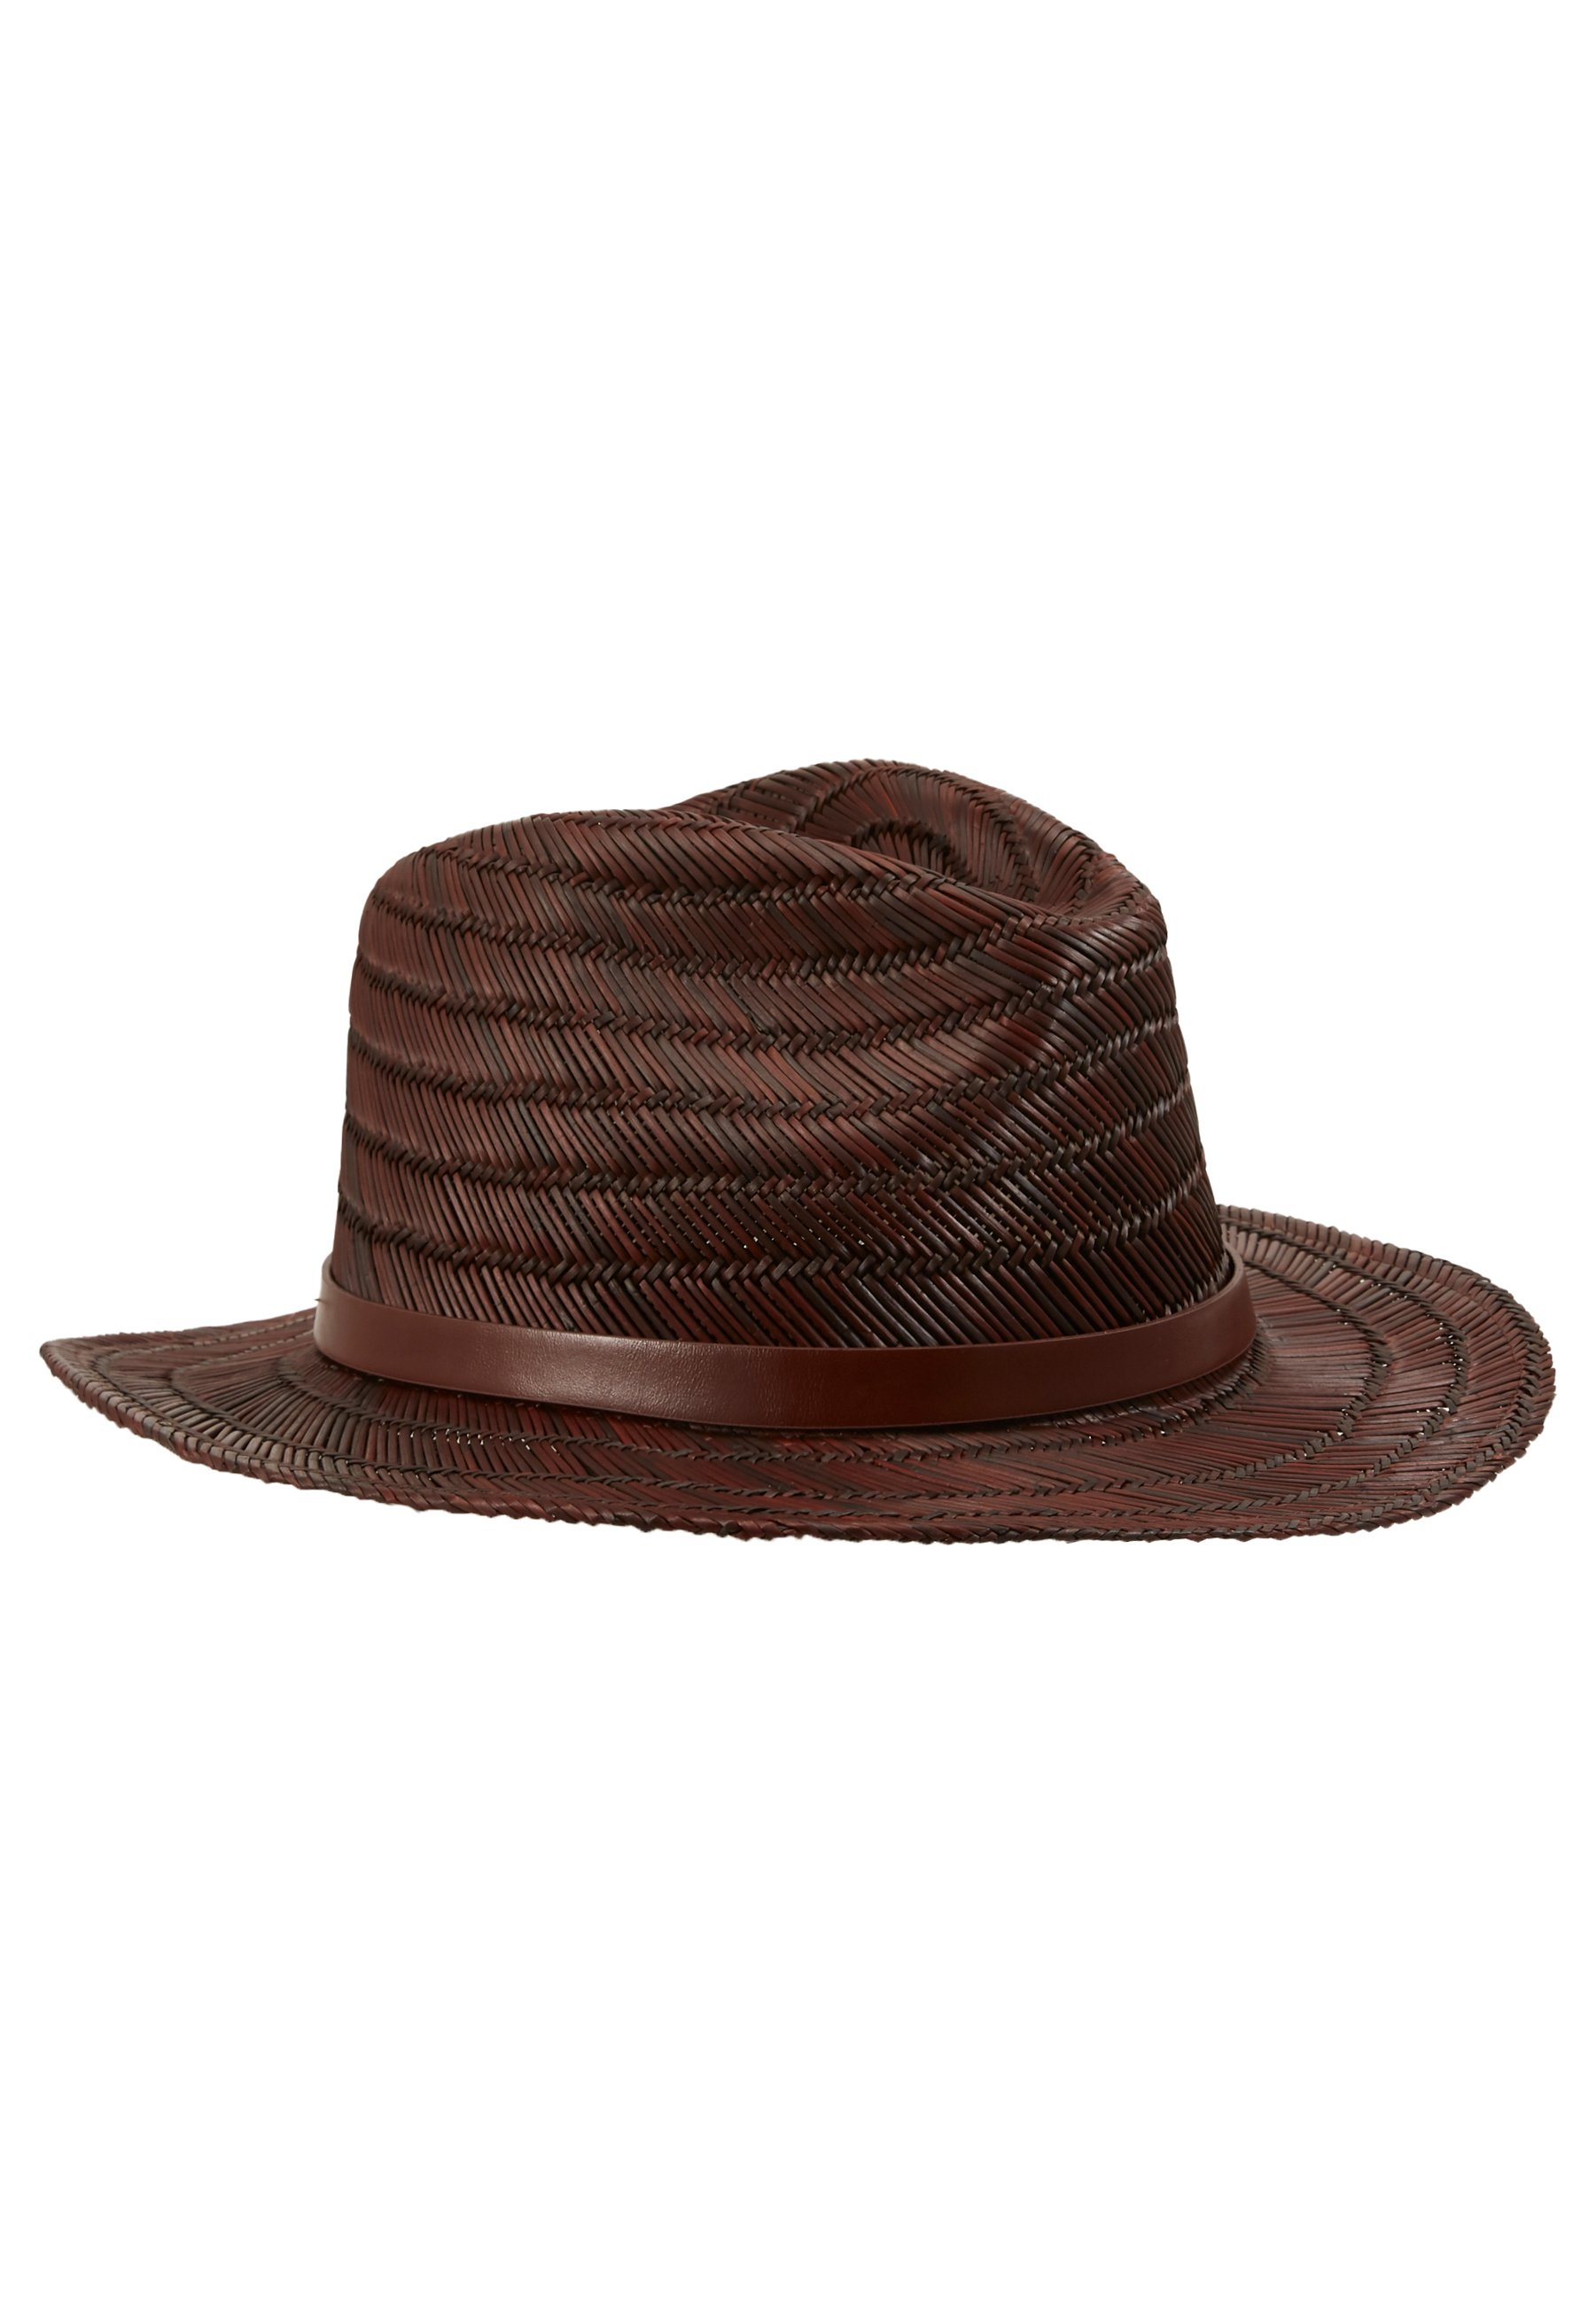 Brixton Messer Fedora - Hut Brown/braun